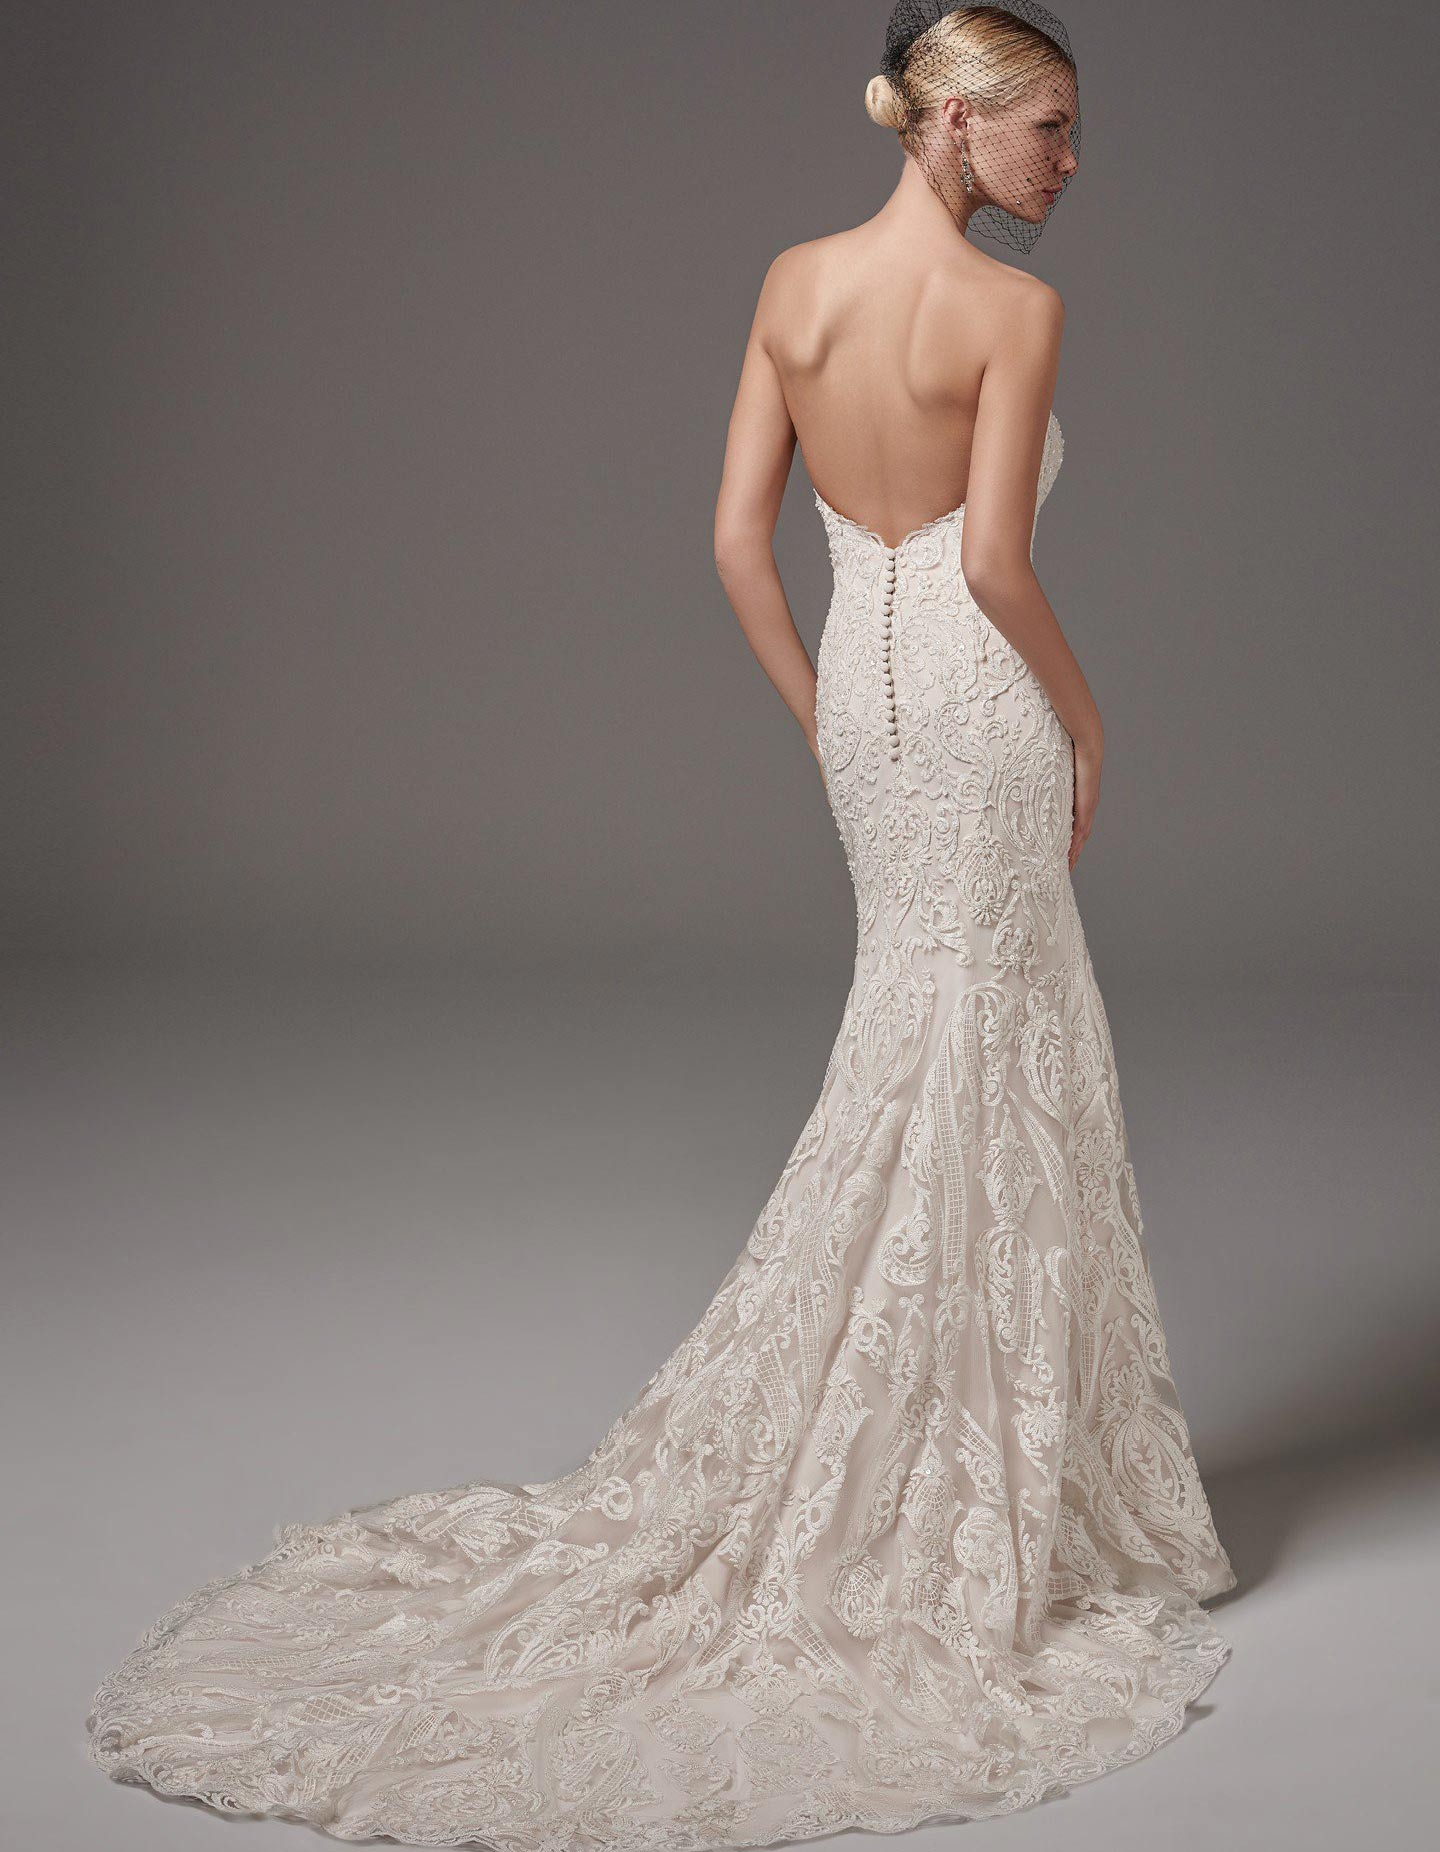 Sottero and Midgley Hadley lace wedding dress with sweetheart neckline